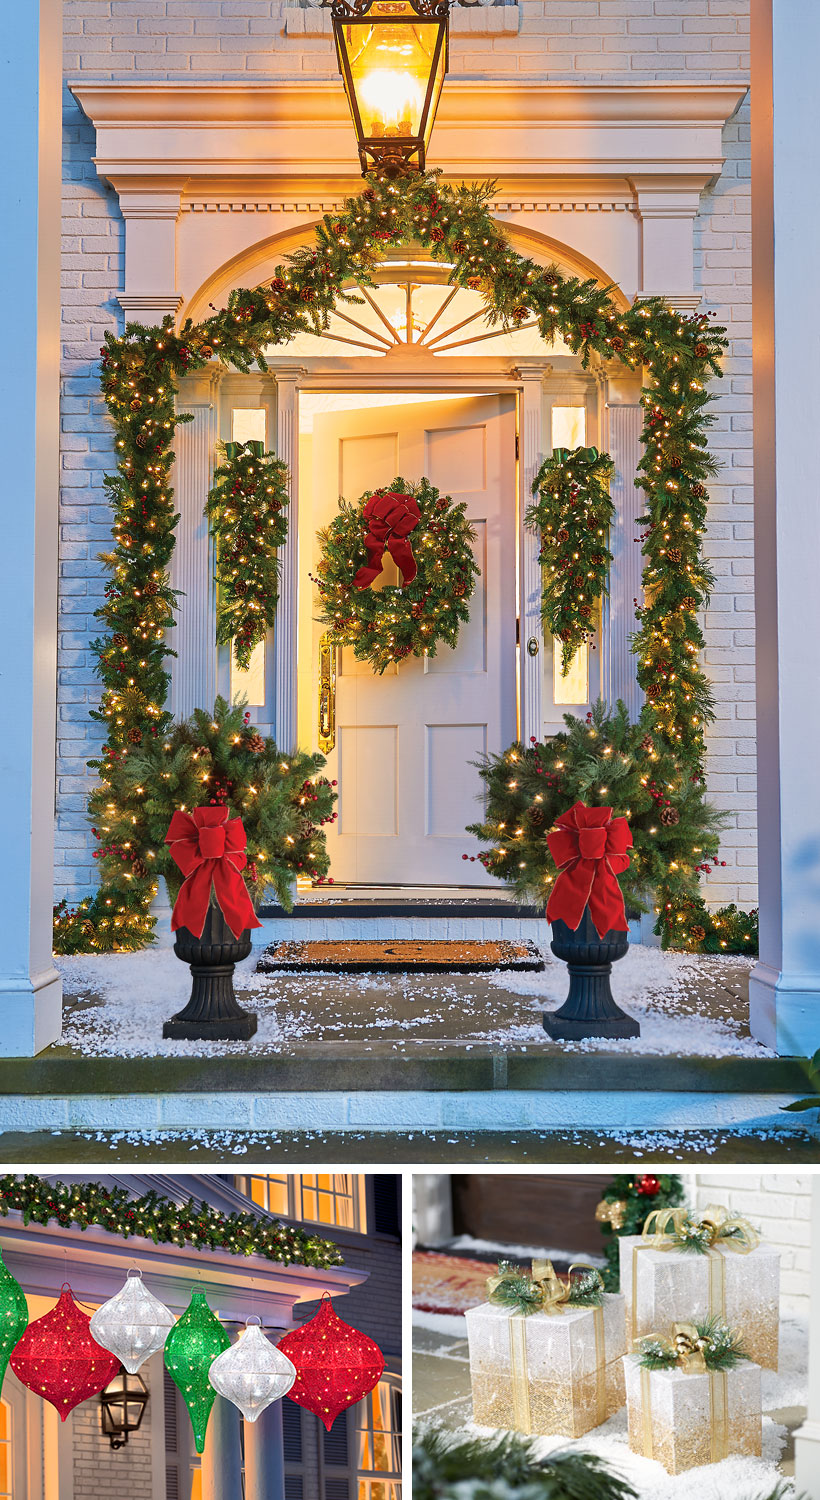 Dress Your Home to Impress with These Outside Christmas Decorations-Entryway